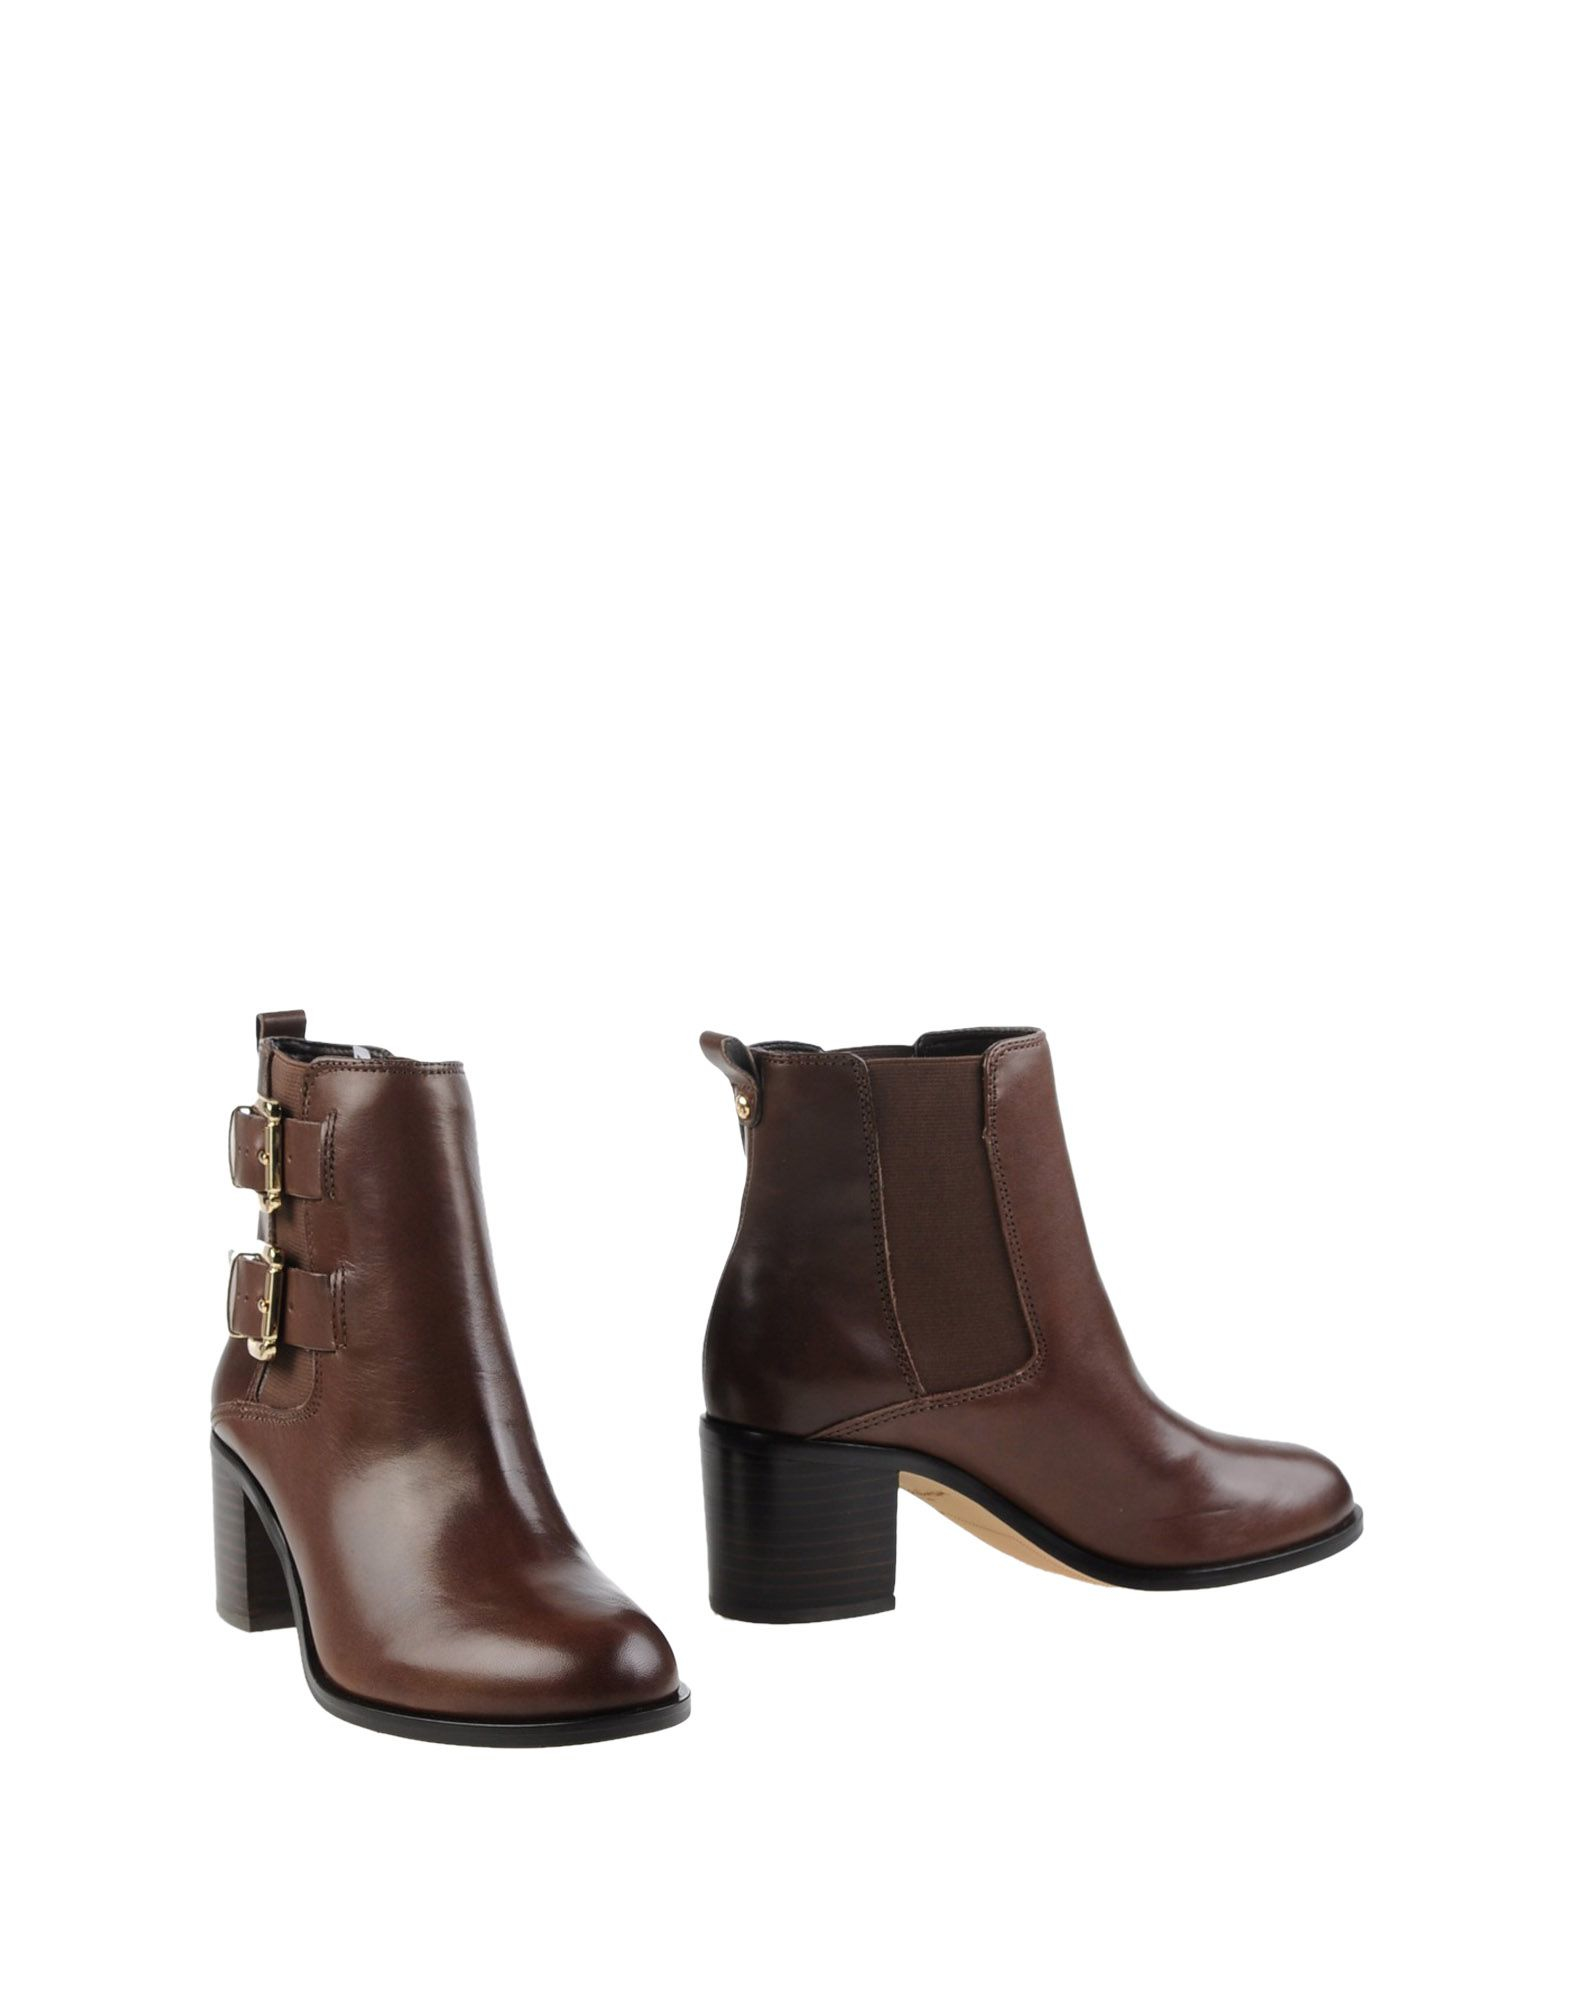 sam edelman ankle boots in brown cocoa